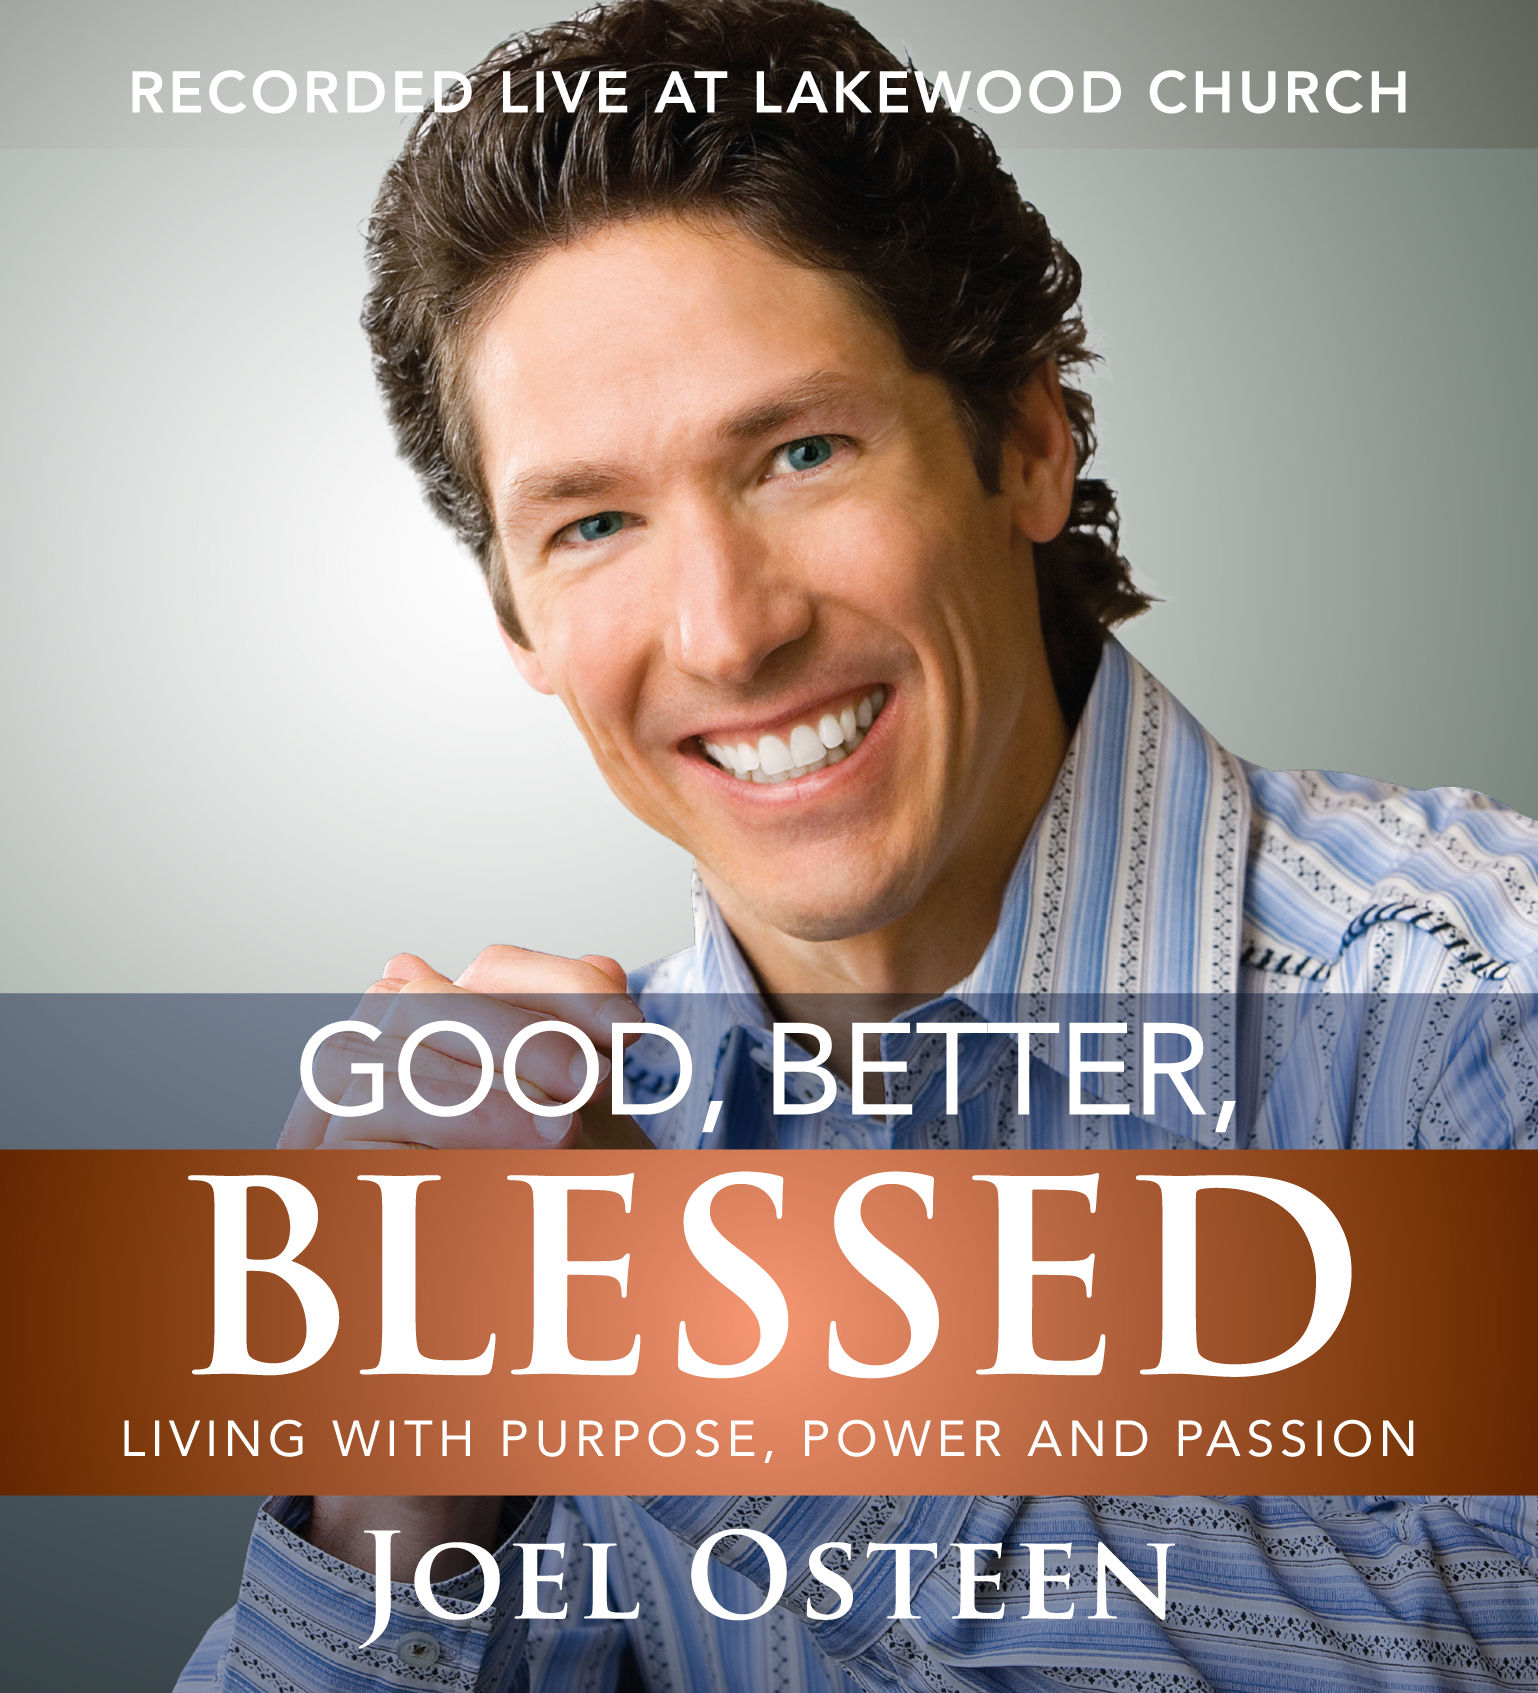 Good, Better, Blessed Audiobook by Joel Osteen | Official